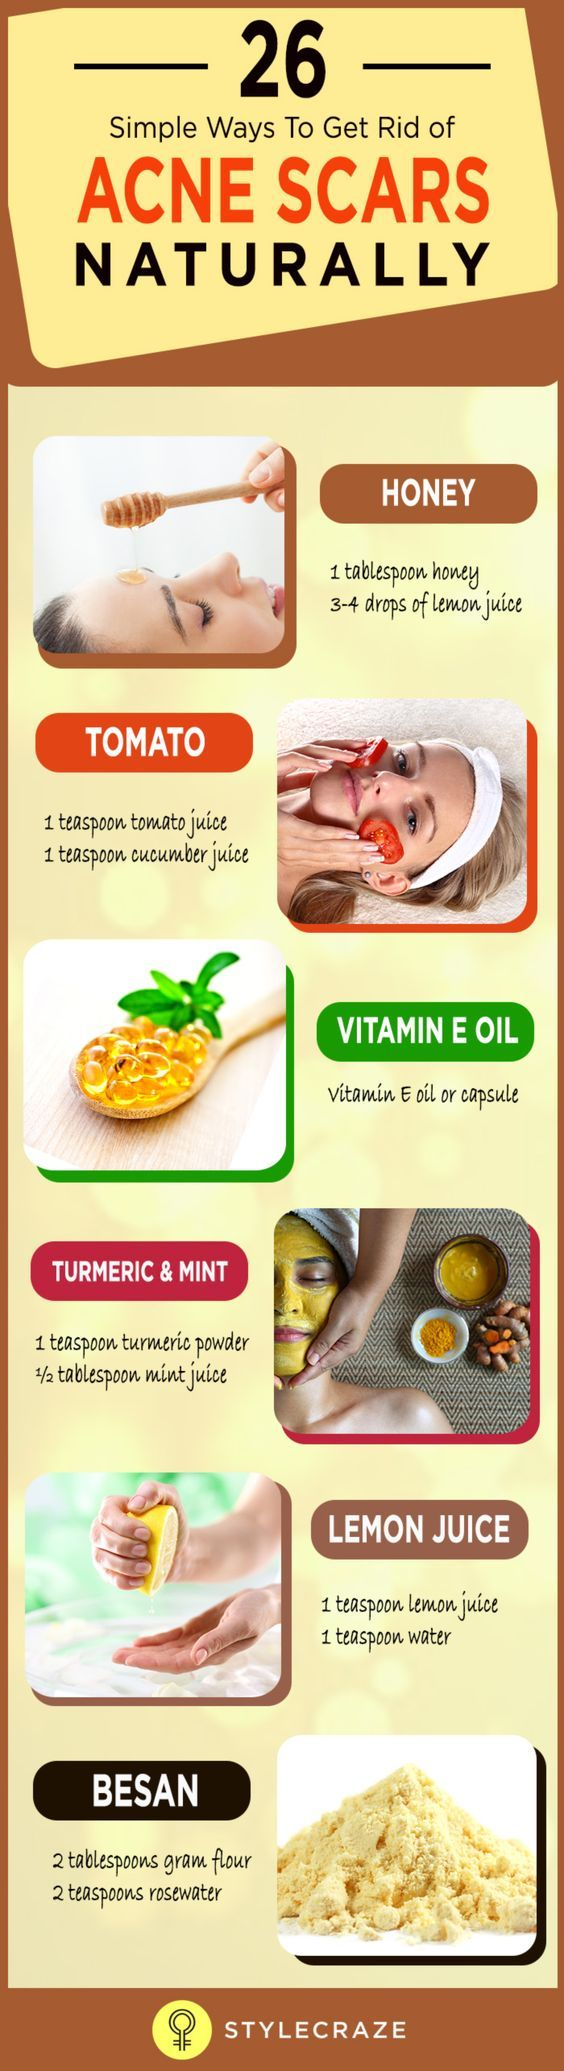 Here are some effective ways to remove acne scars naturally. Most of them are home treatments, and quite easy to do on a regular basis.